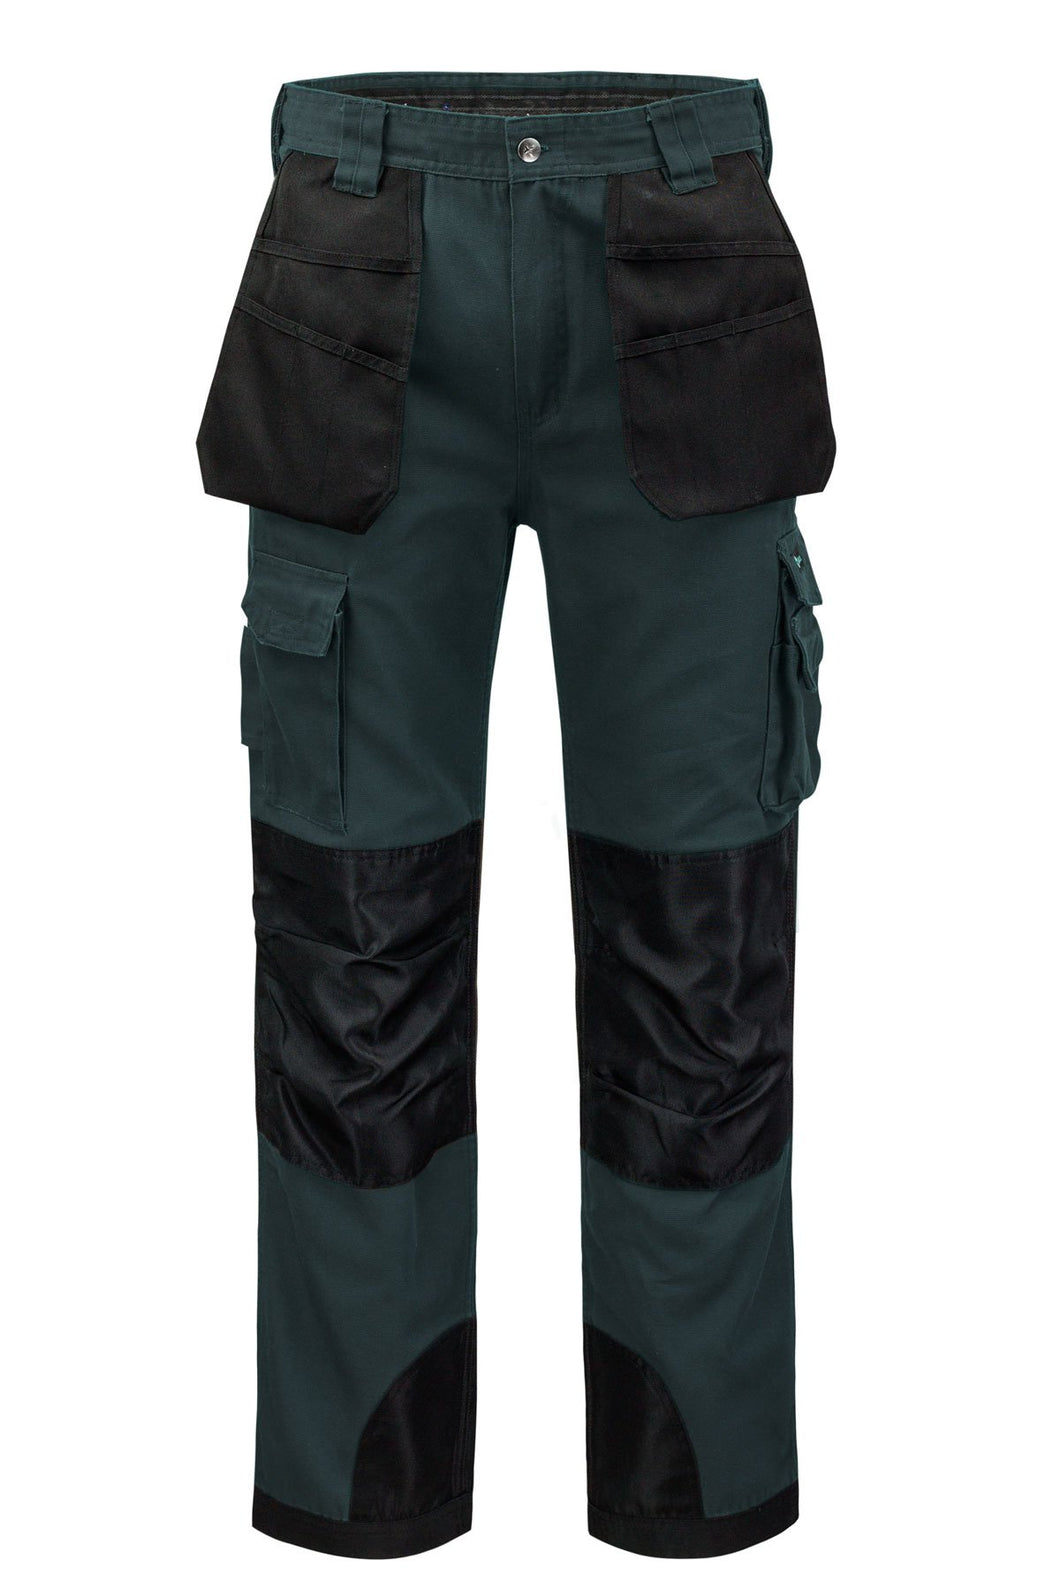 KP12 - Kolossus Strength Utility Work Pant |10 Pockets and PE Reinforced Knees